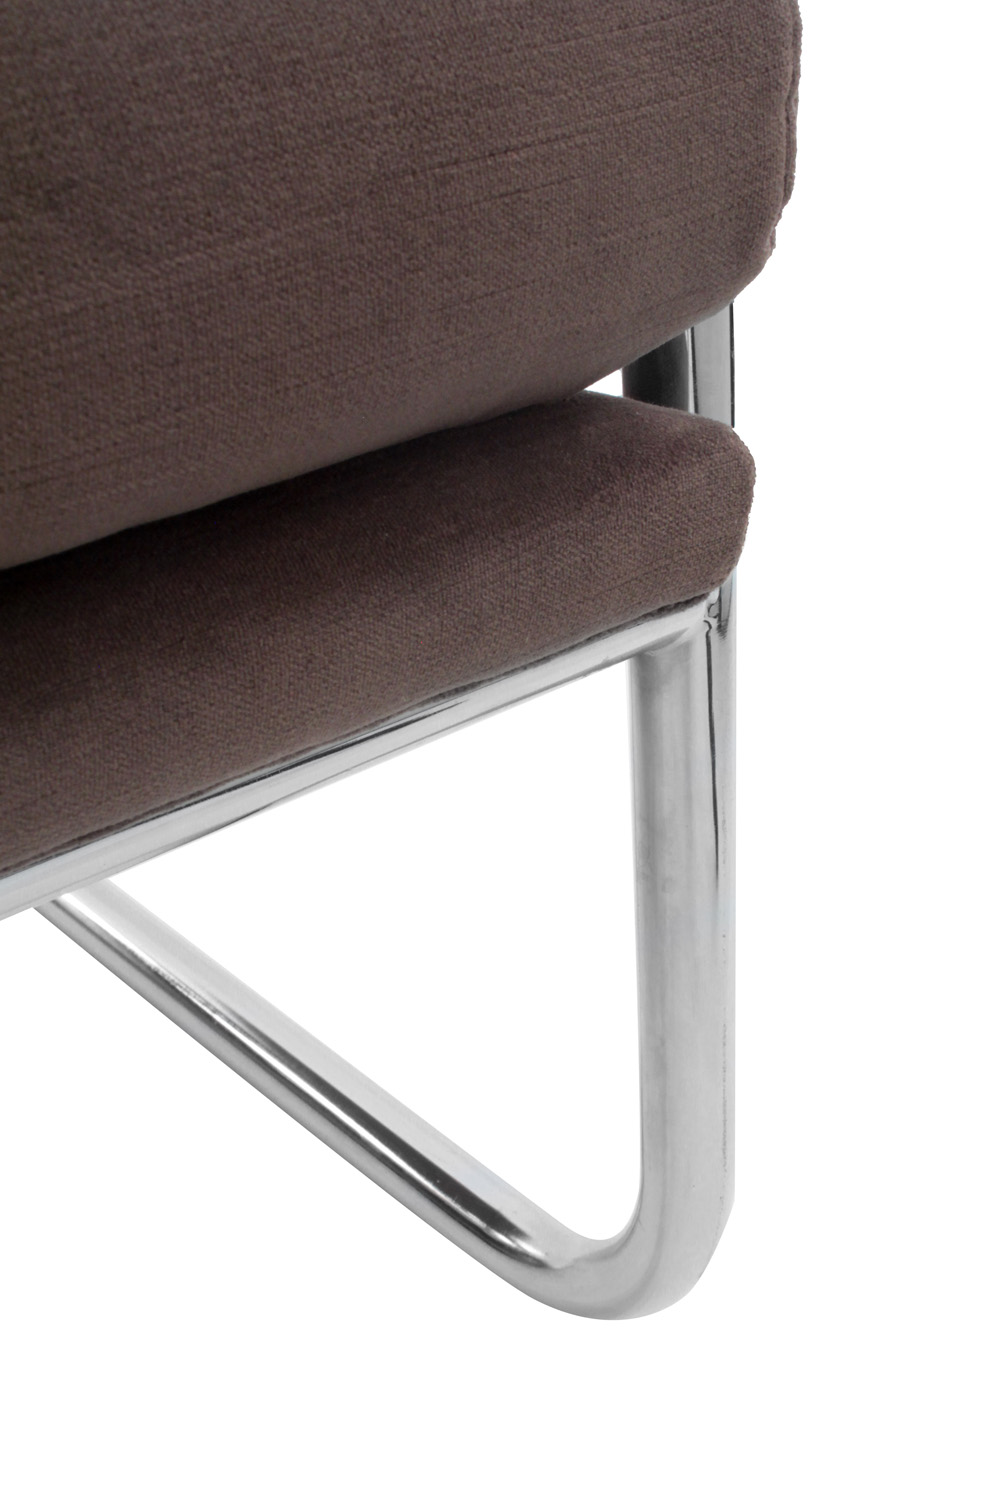 Baughman 85 thk chrome frame loungechairs136 detail6 hires.jpg